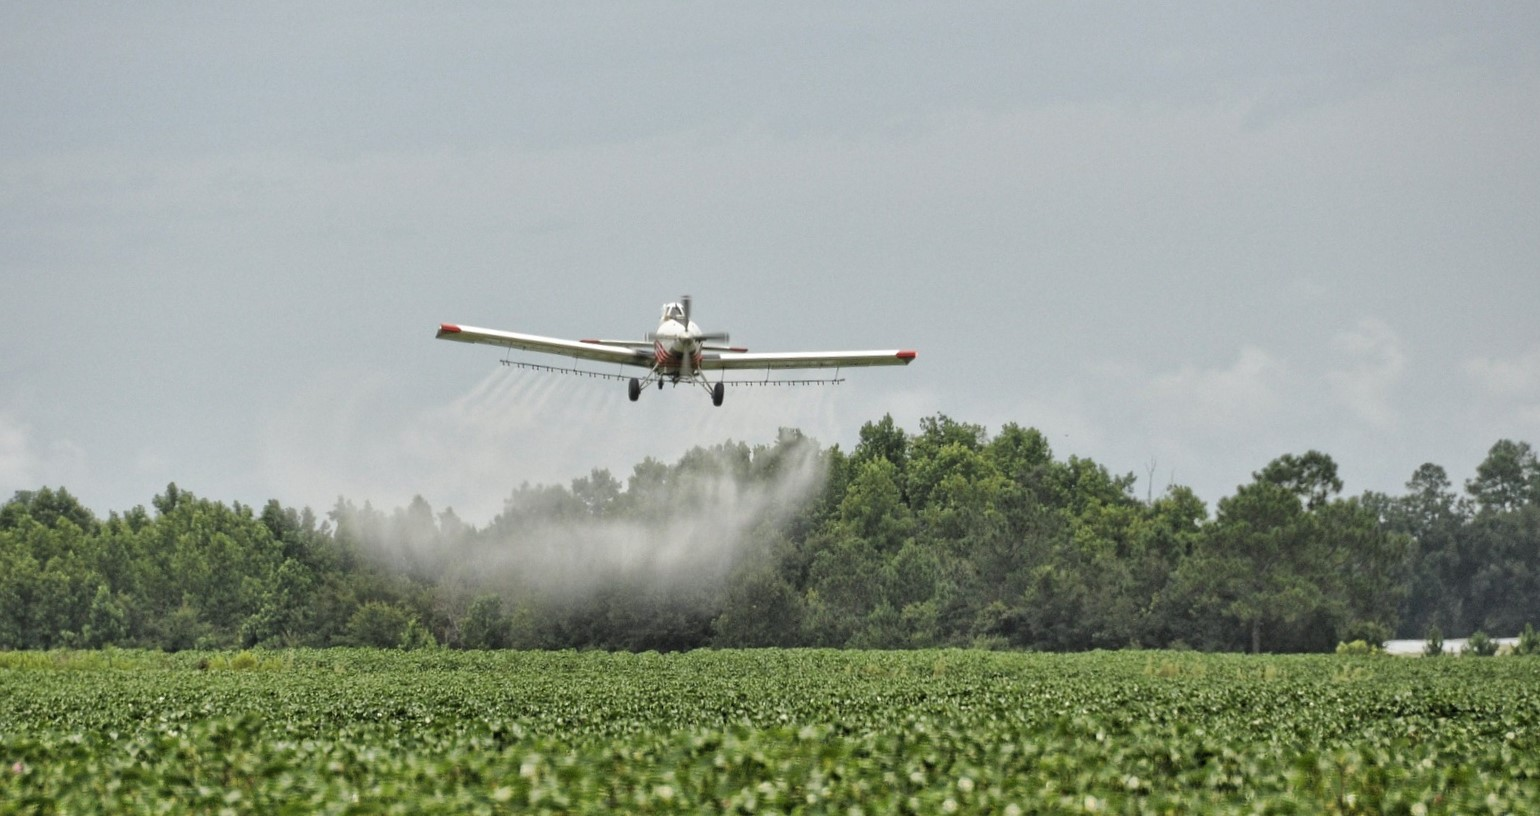 A small low-flying aircraft spraying pesticides on a field of green crops.